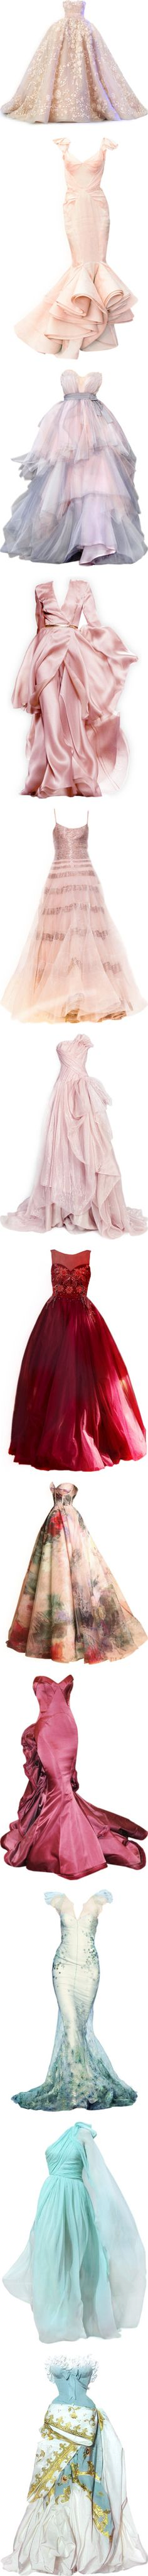 Dream gowns by satinee on Polyvore featuring women's fashion, dresses, gowns, long dresses, vestidos, pink gown, elie saab, pink evening dress, pink ball gown and pink dress